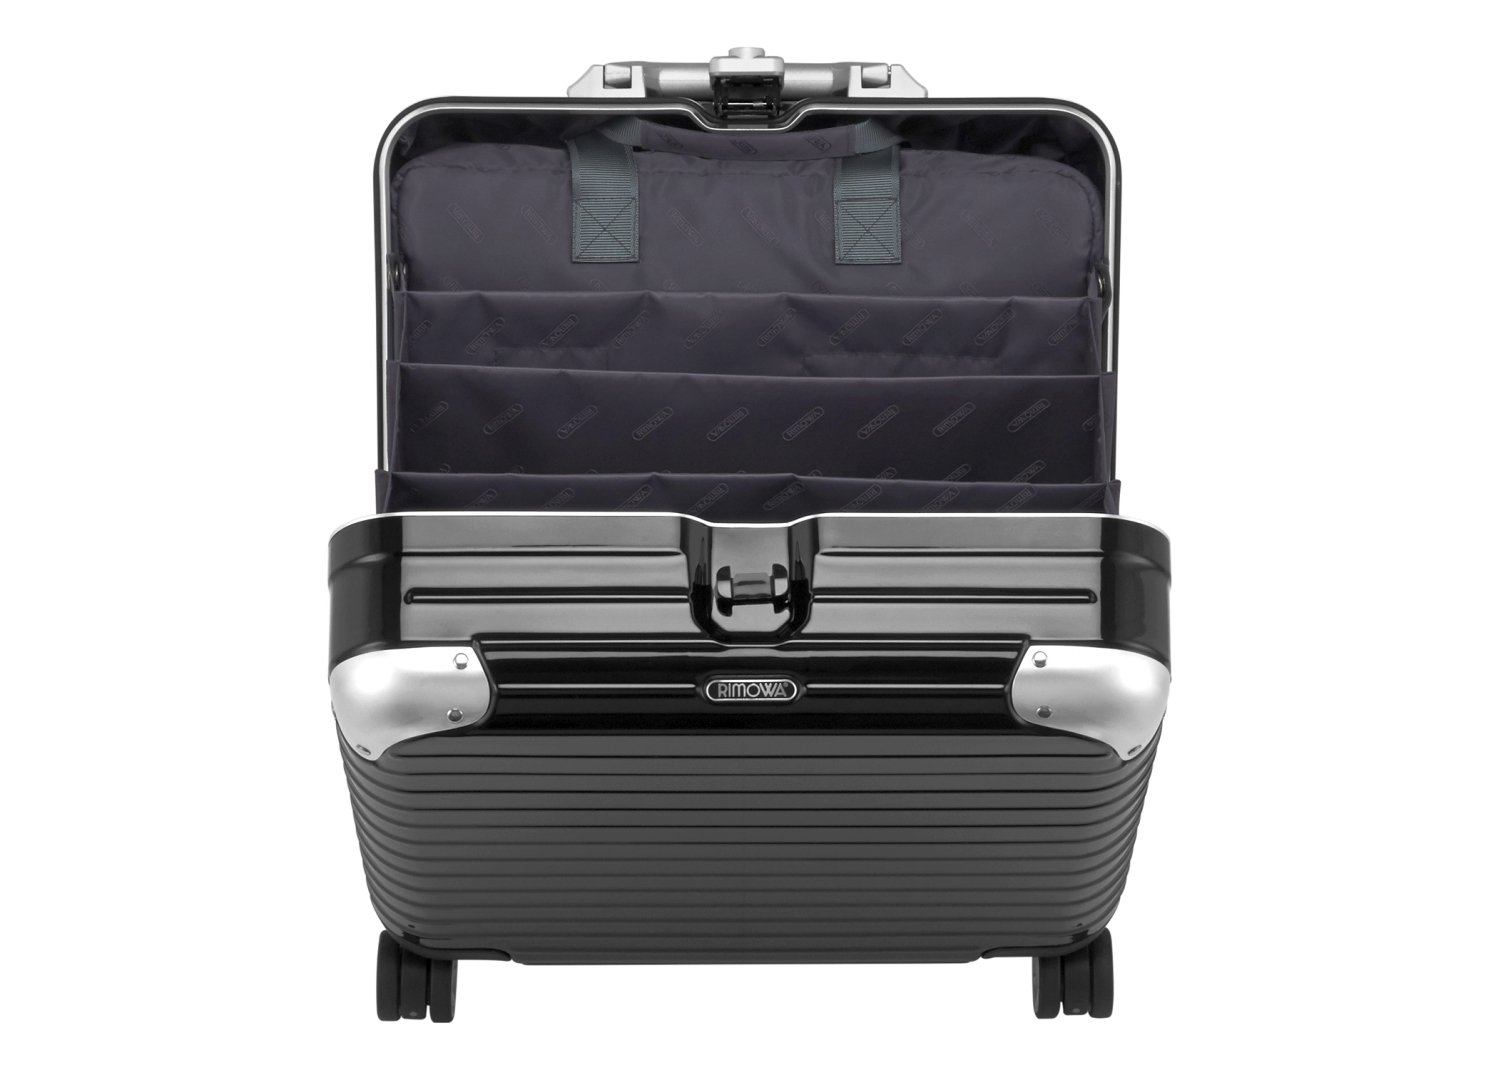 rimowa limbo business multiwheel trolley 40 schwarz kofferexpress 24. Black Bedroom Furniture Sets. Home Design Ideas